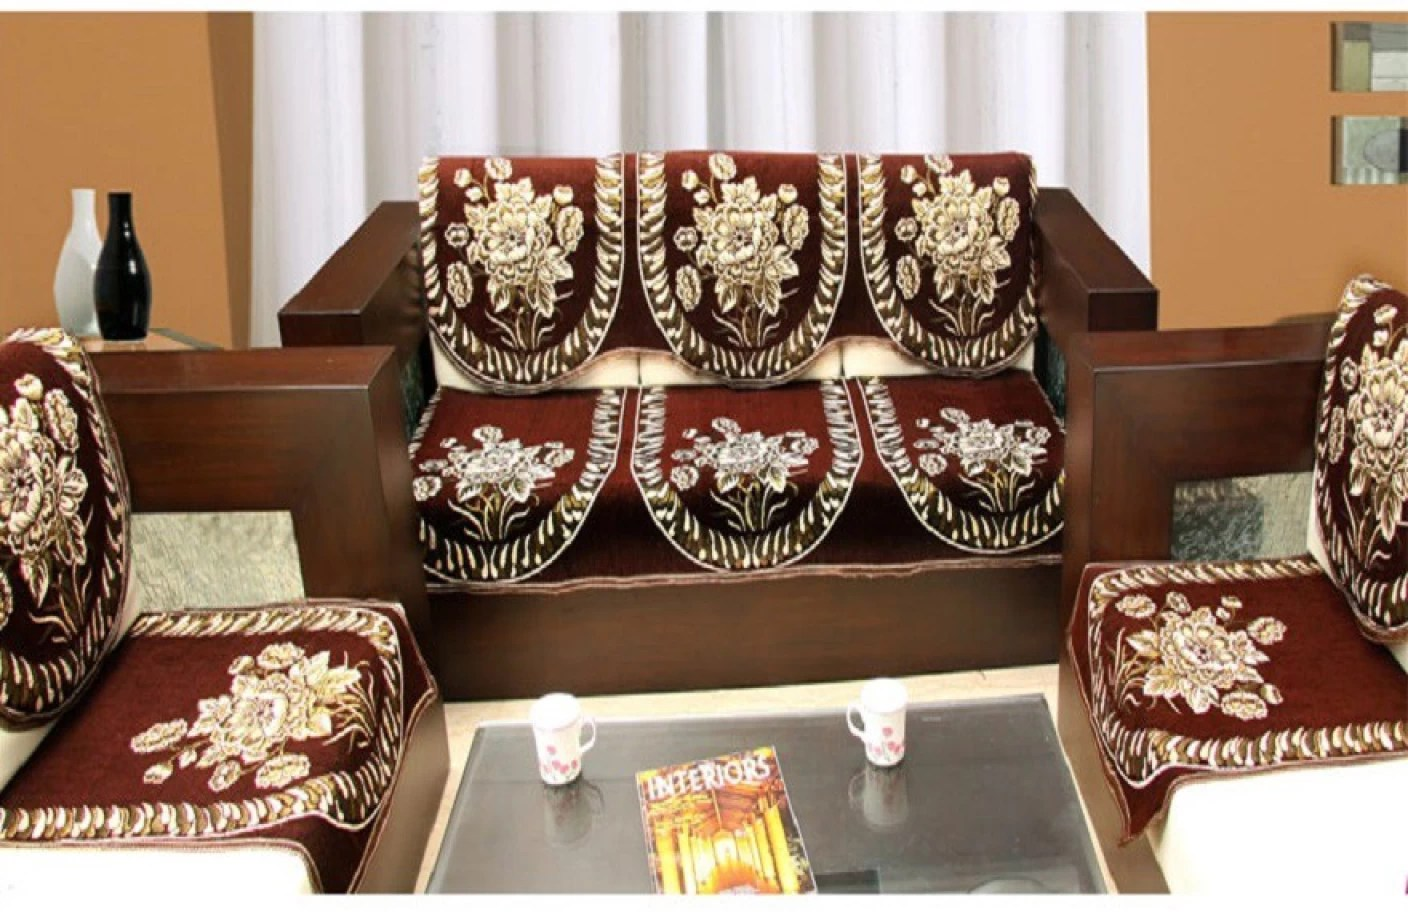 dining chair covers set of 6 india dark teal sashes zesture jacquard sofa cover price in buy